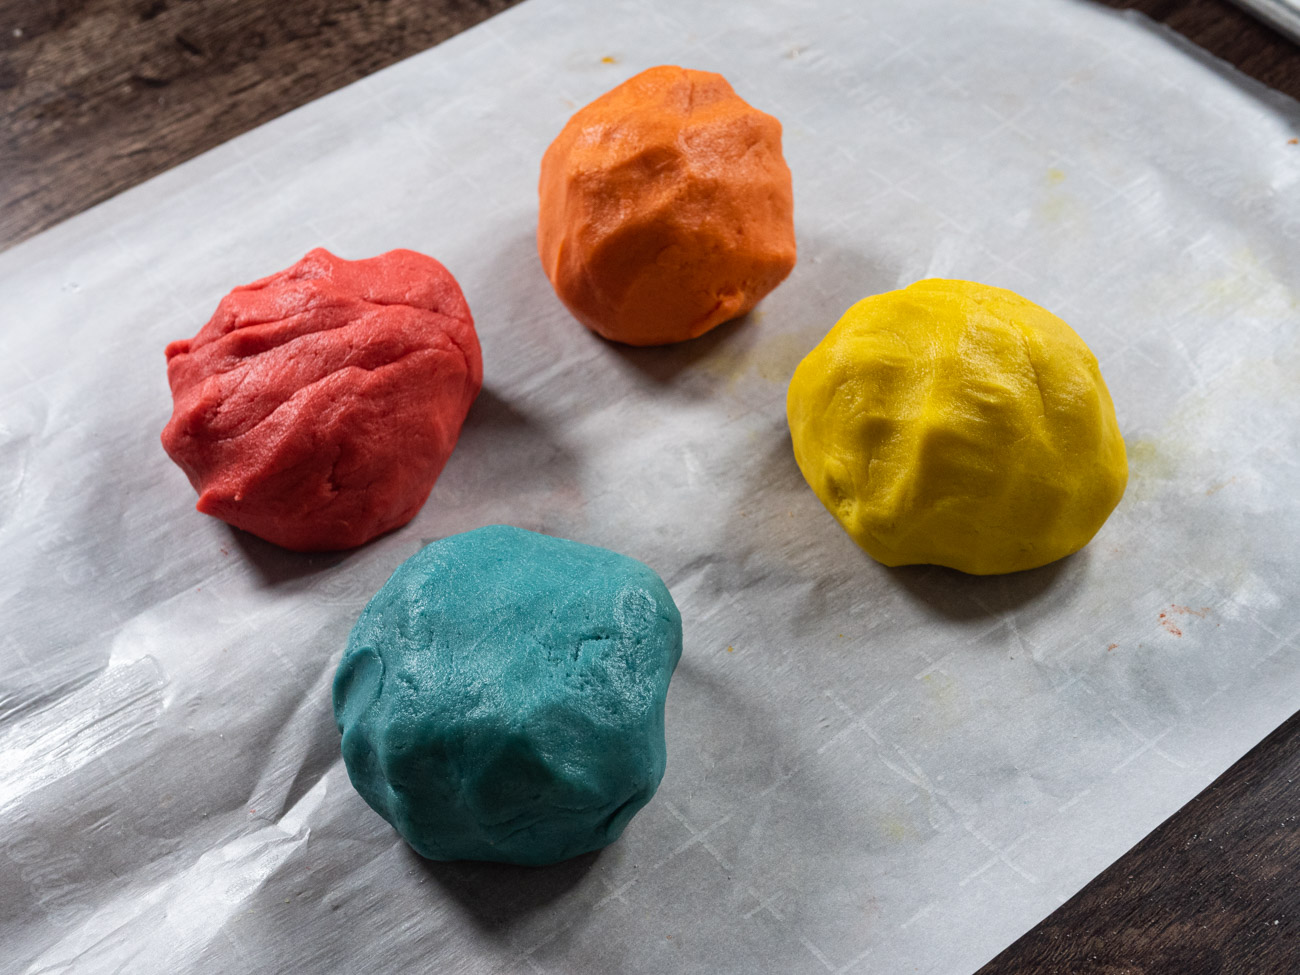 Cut dough into 4 equal sections (or less if using fewer Jello flavors). Add 2 tablespoons of Jello to each quarter and knead until color is even. Use food coloring if colors aren't as vibrant as you'd like. Use gloves for the steps that involve Jello and/or food coloring to avoid staining your hands.